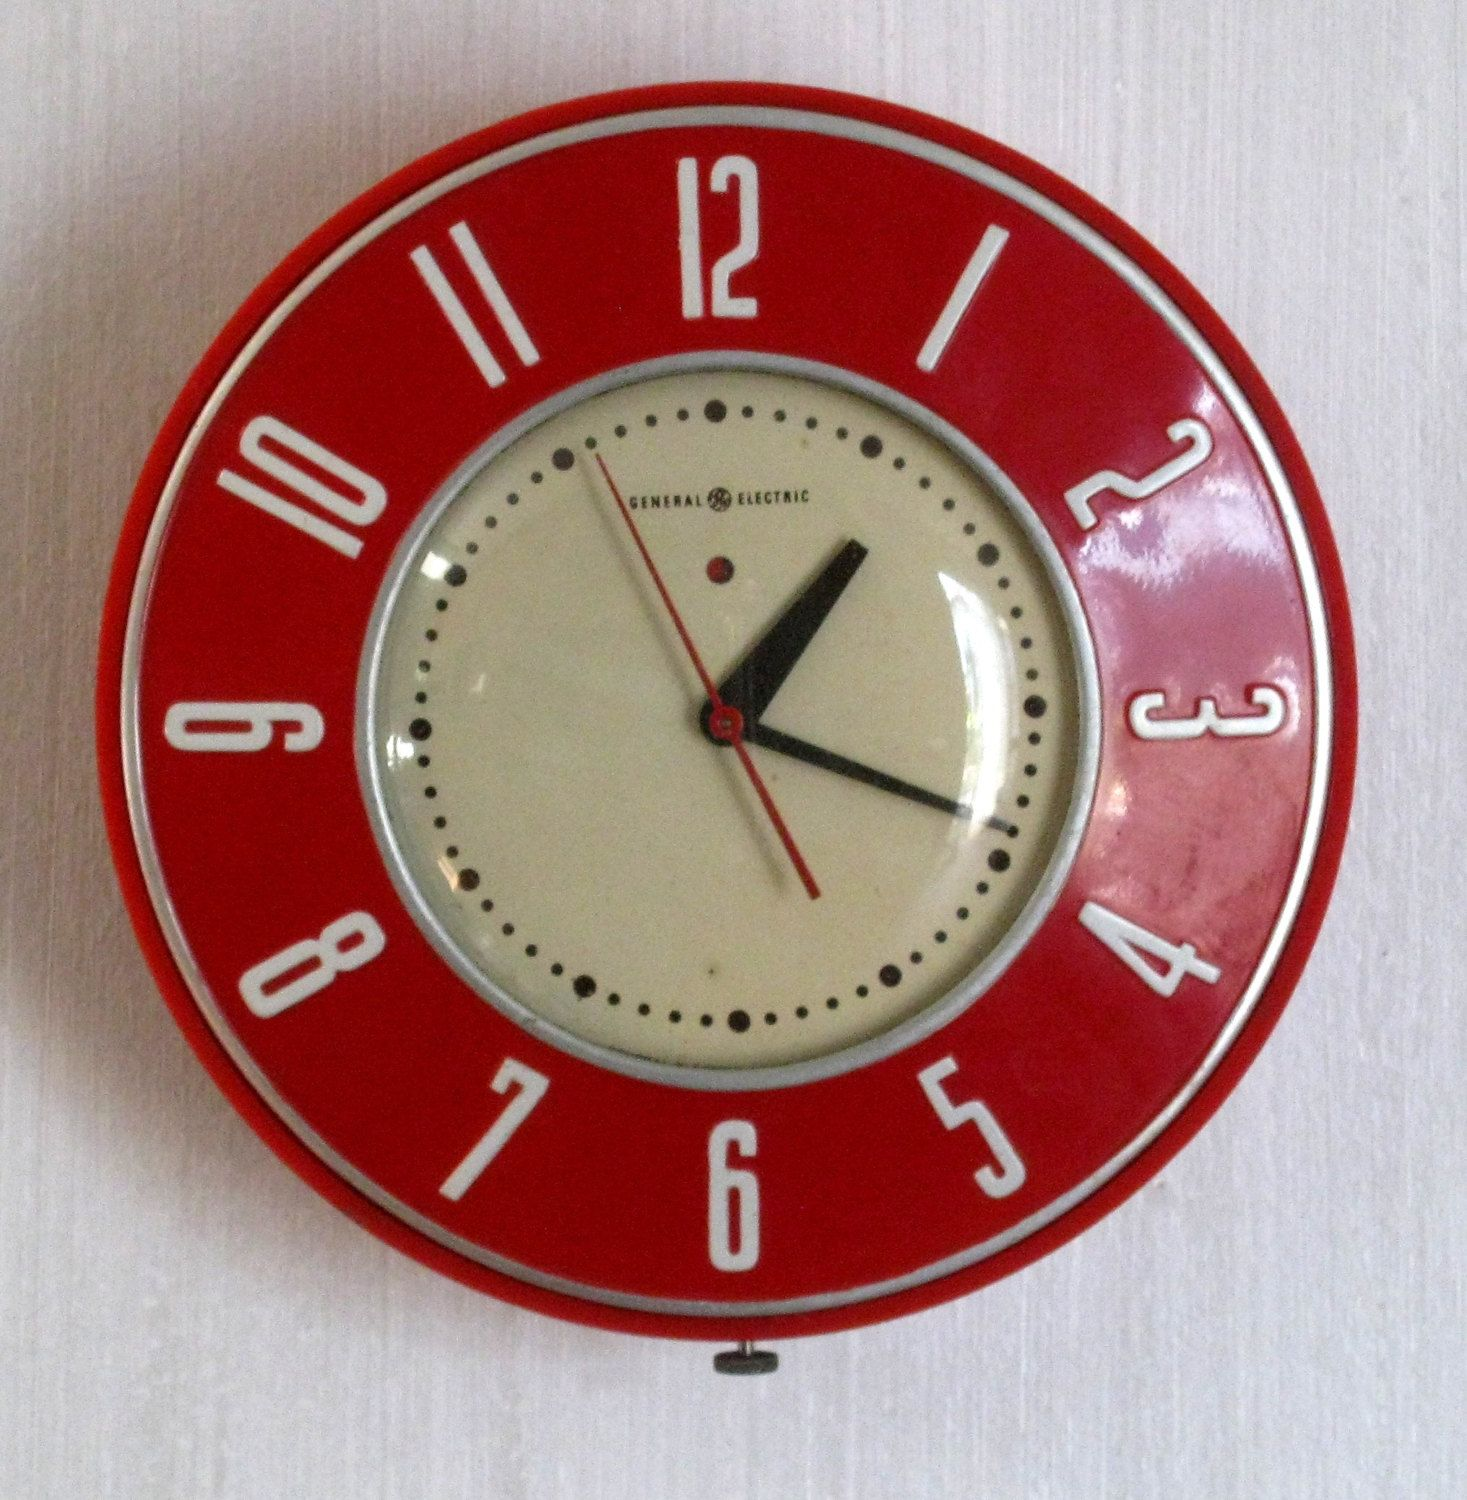 Vintage General Electric Red And White Electric Wall Clock Model 2h26 The Gourmet 1950 S Wall Clock Clock Vintage Clock